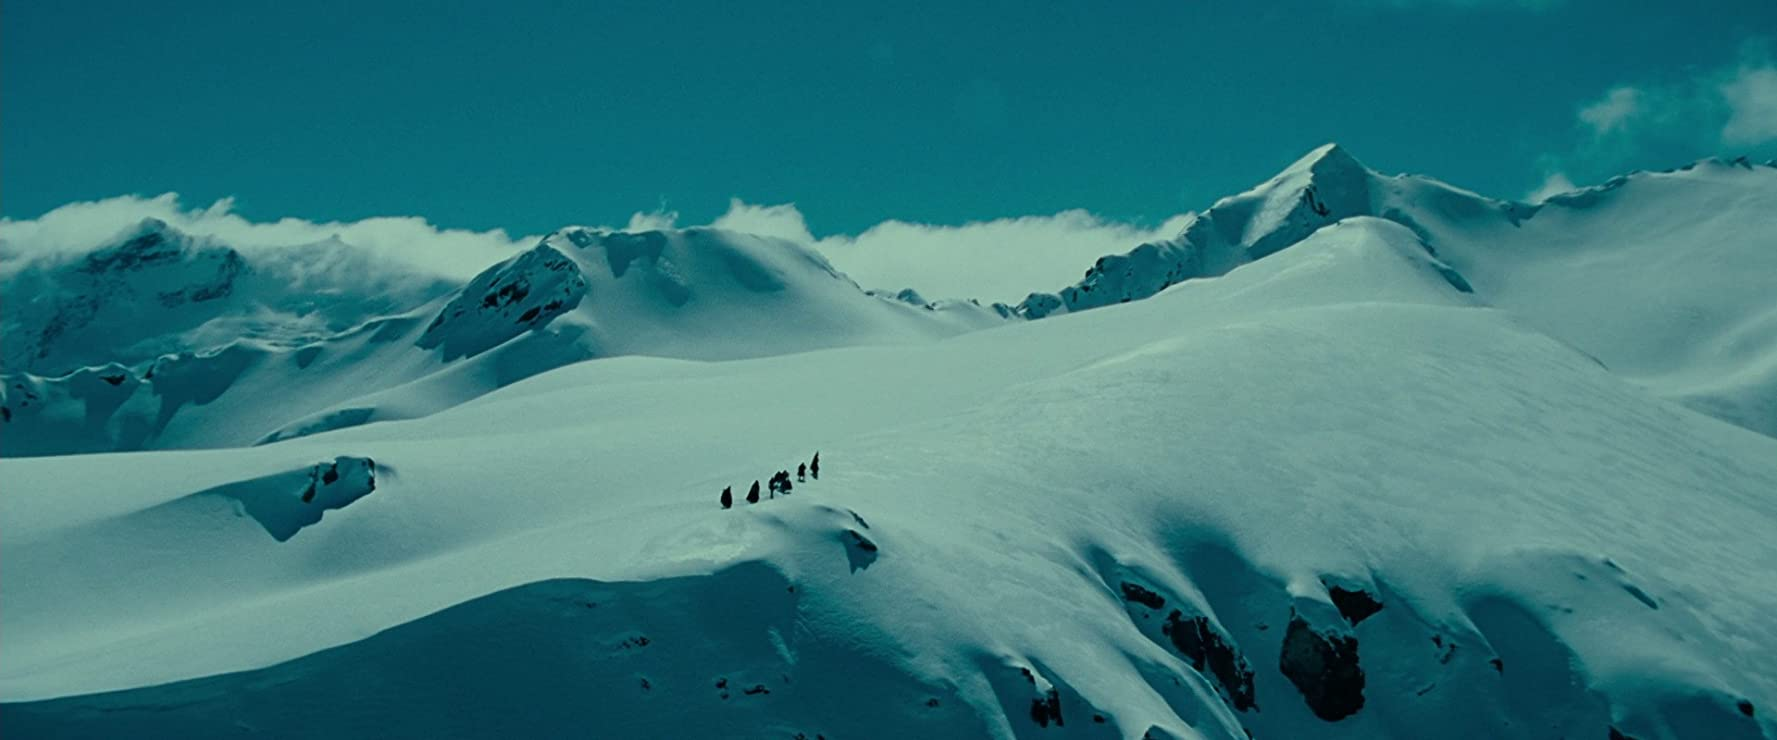 The snow-capped peaks in The Lord of the Rings are a delight to watch.